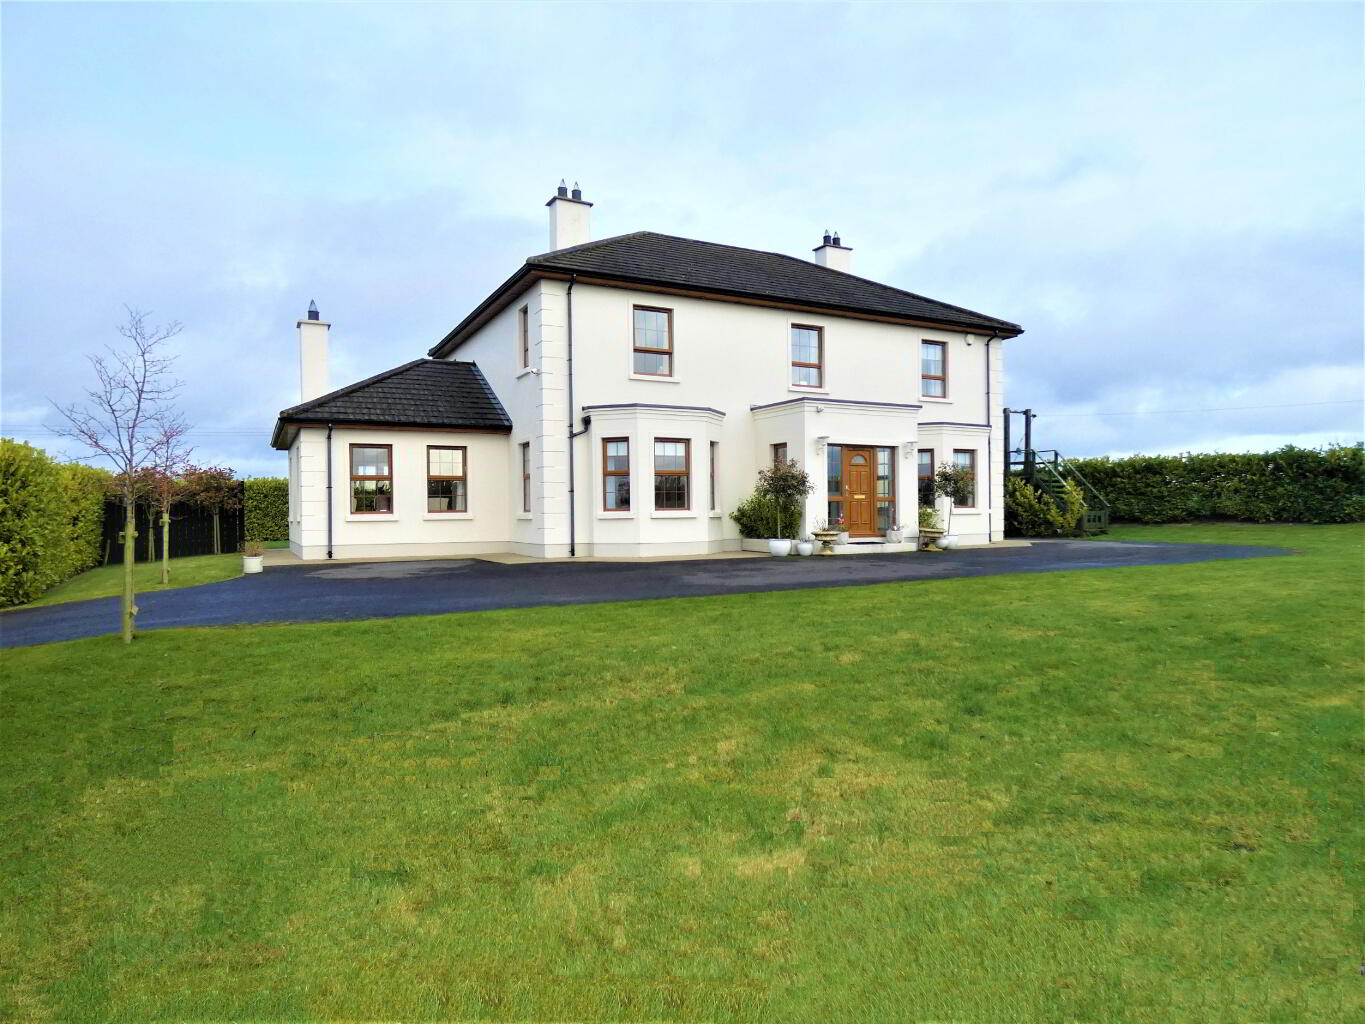 Lifford gateway to North Donegal, Derry+Tyrone - Houses for